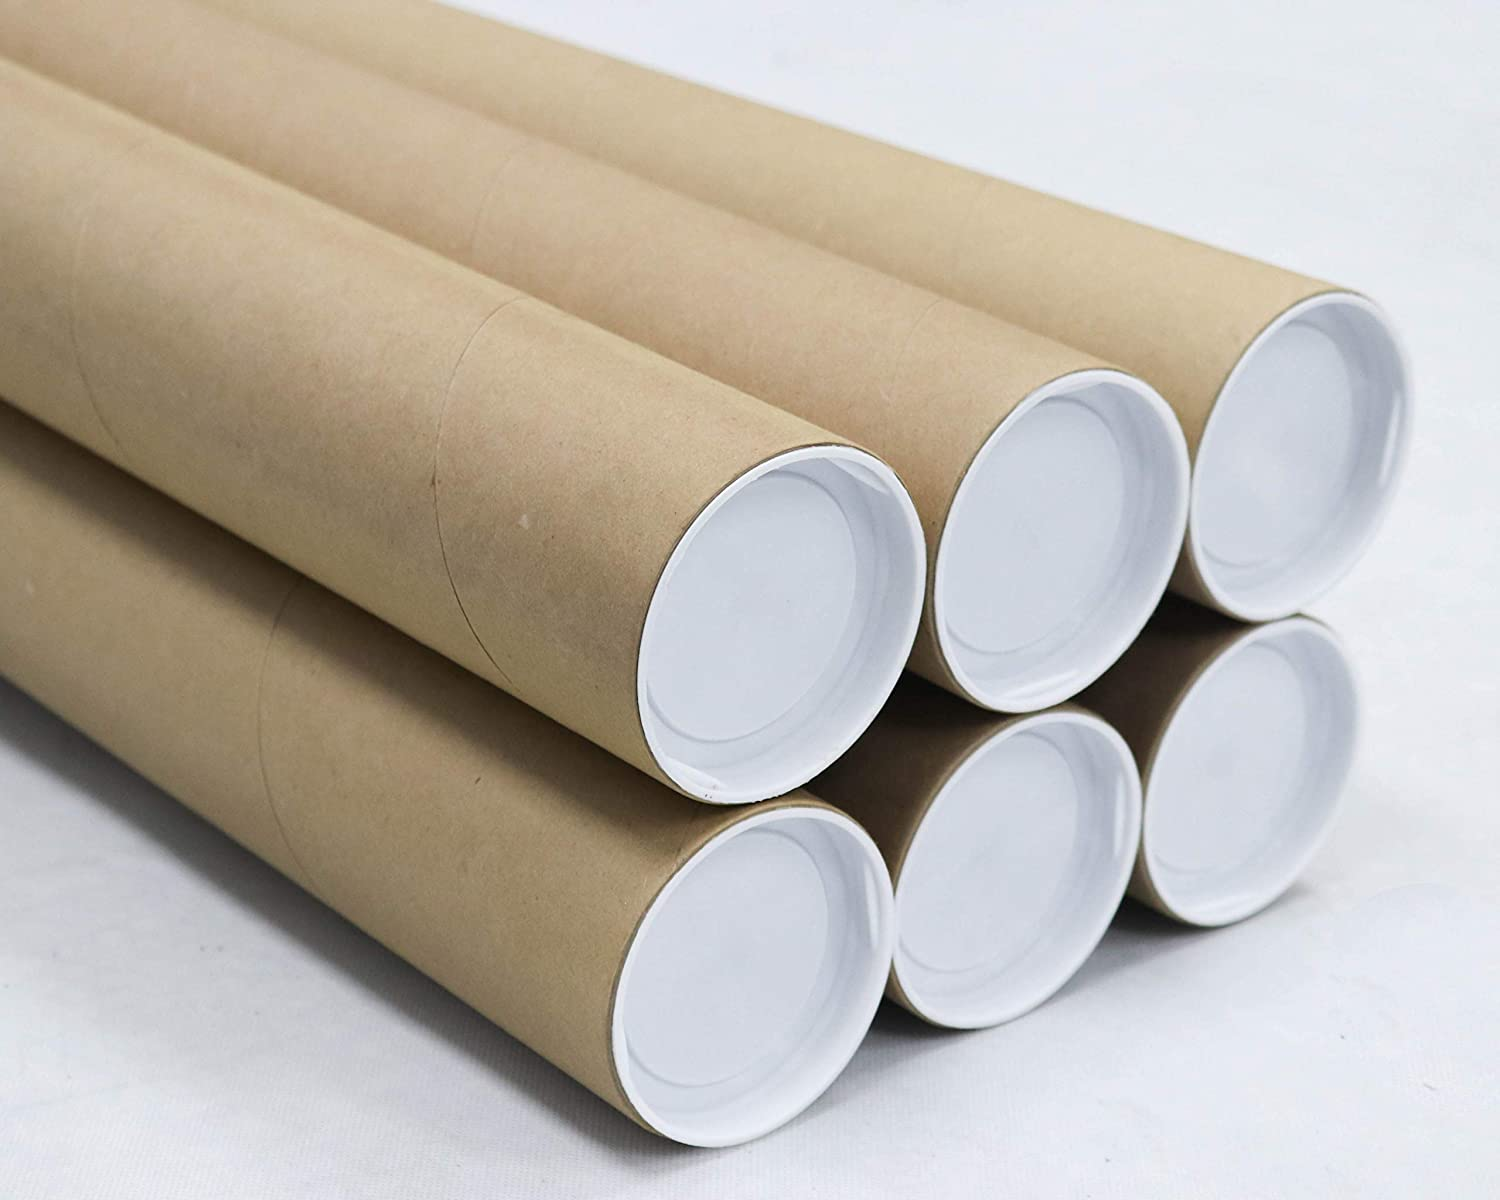 3 inch x 30 inch, Mailing Tubes with Caps (6 Pack) | MagicWater Supply